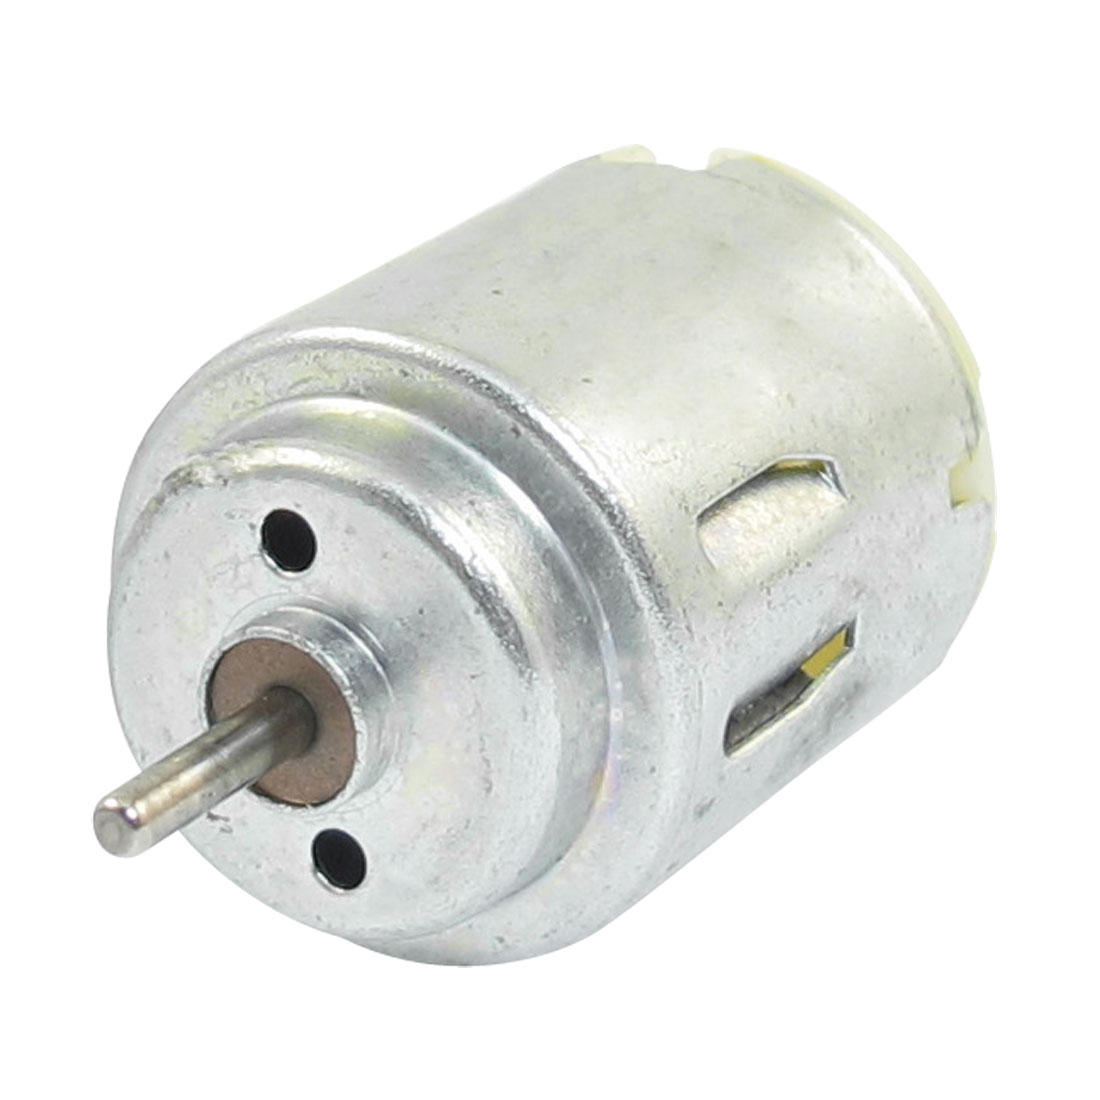 6600-24000RPM 1.5-6V High Torque Cylinder Electric Mini DC Motor